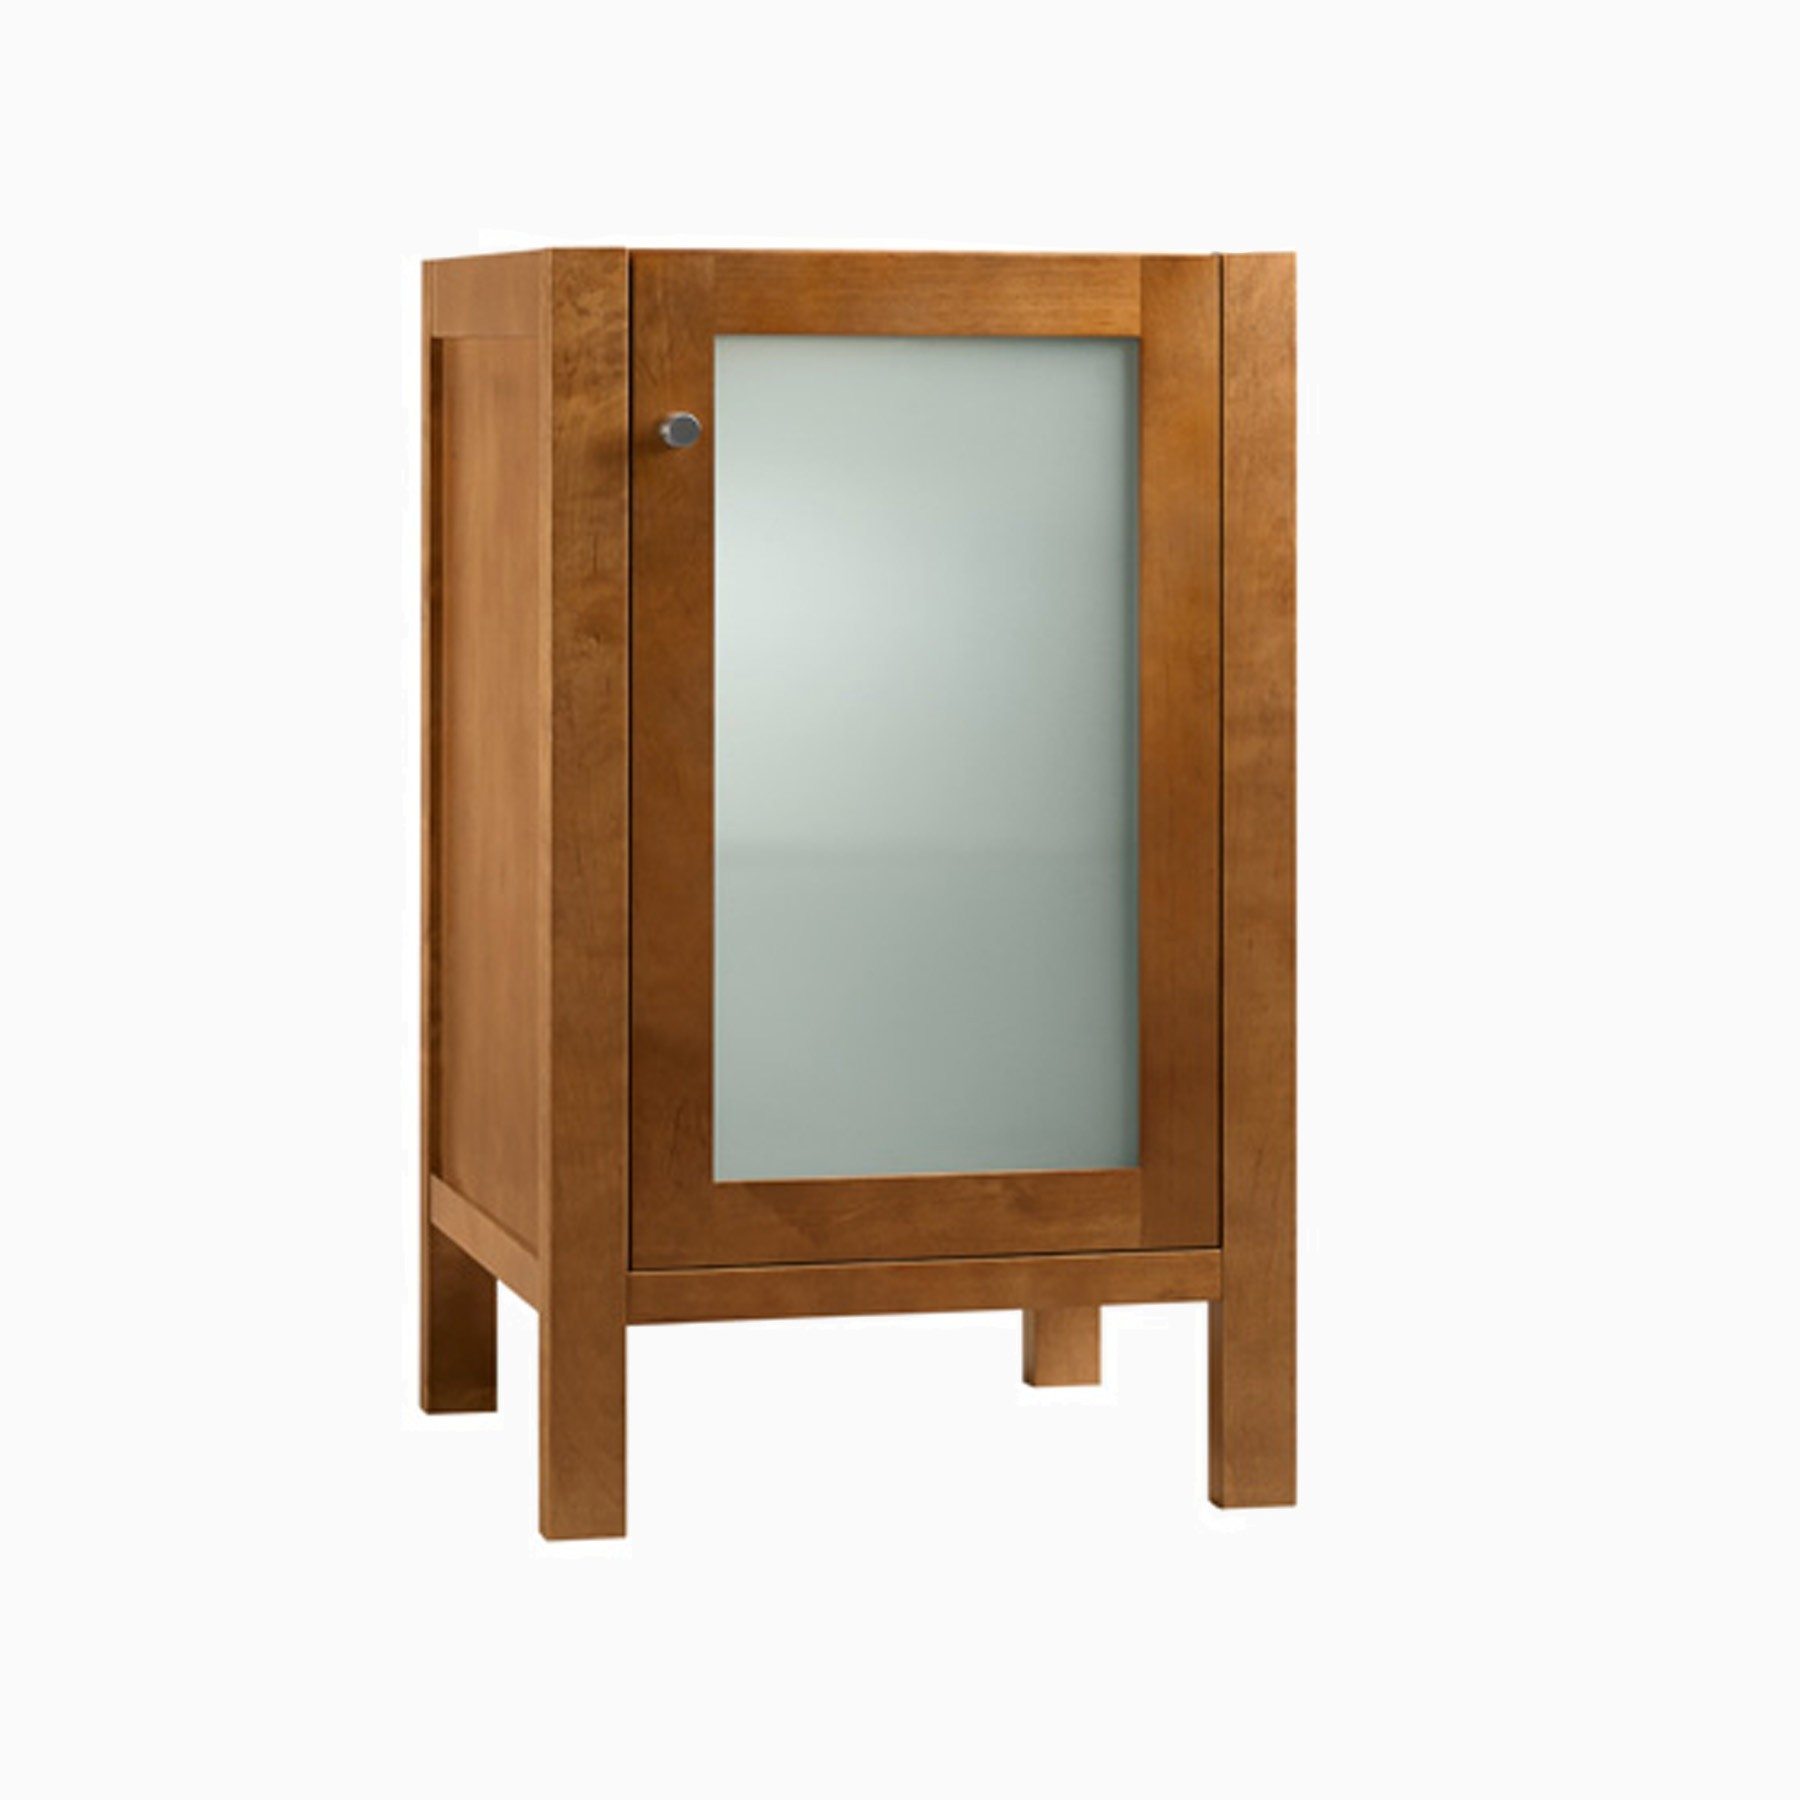 18 patricia single bathroom vanity base cabinet only with frosted glass door natural cherry for Bathroom vanity with frosted glass doors